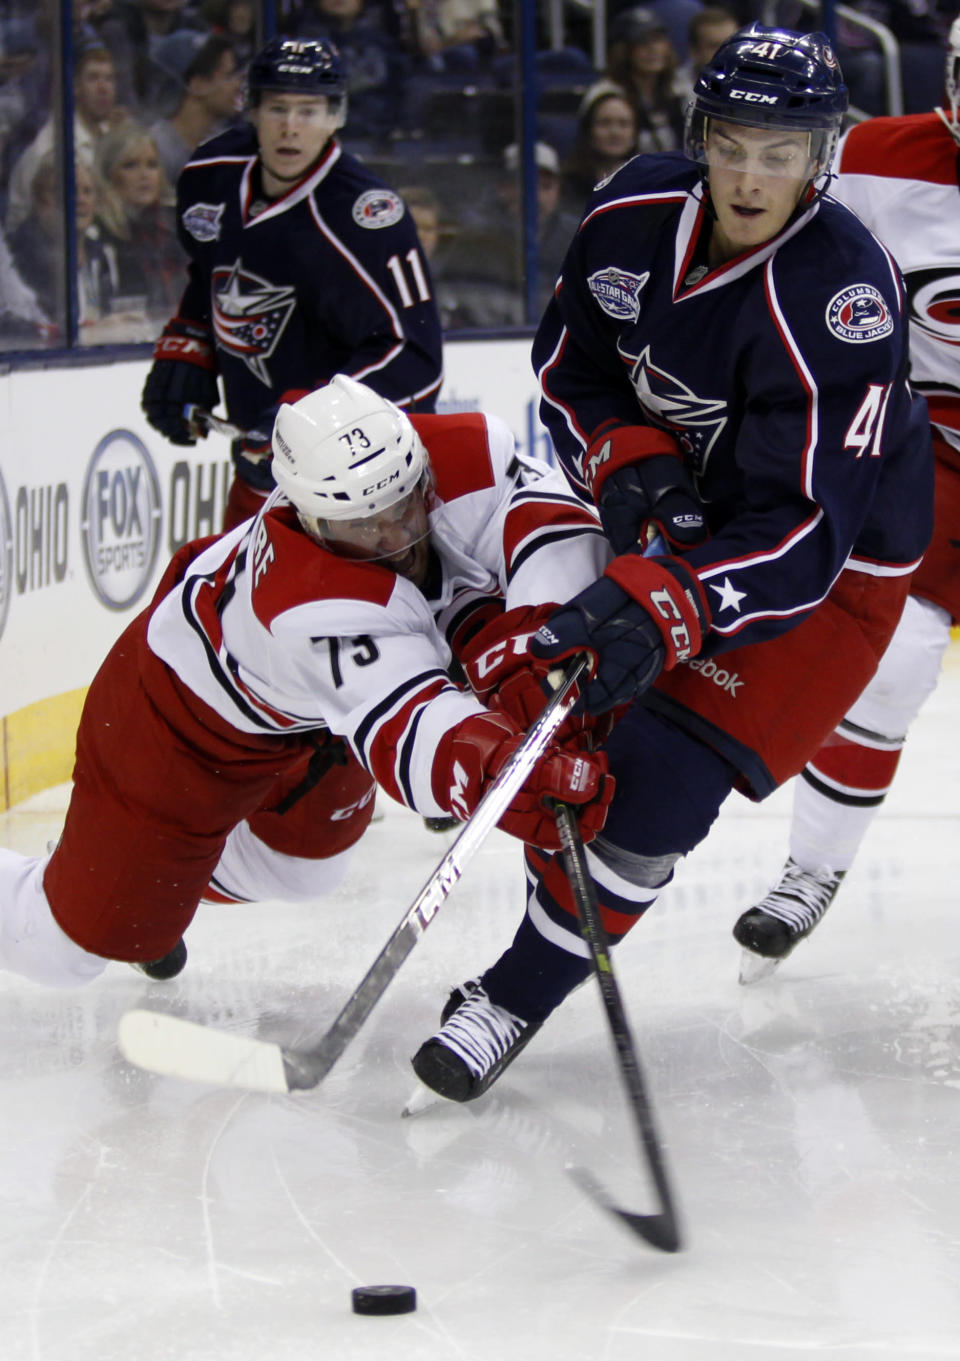 Carolina Hurricanes' Brett Bellemore, left, and Columbus Blue Jackets' Alexander Wennberg, of Sweden, reach for the puck during the second period of an NHL hockey game in Columbus, Ohio, Tuesday, Nov. 4, 2014. (AP Photo/Paul Vernon)